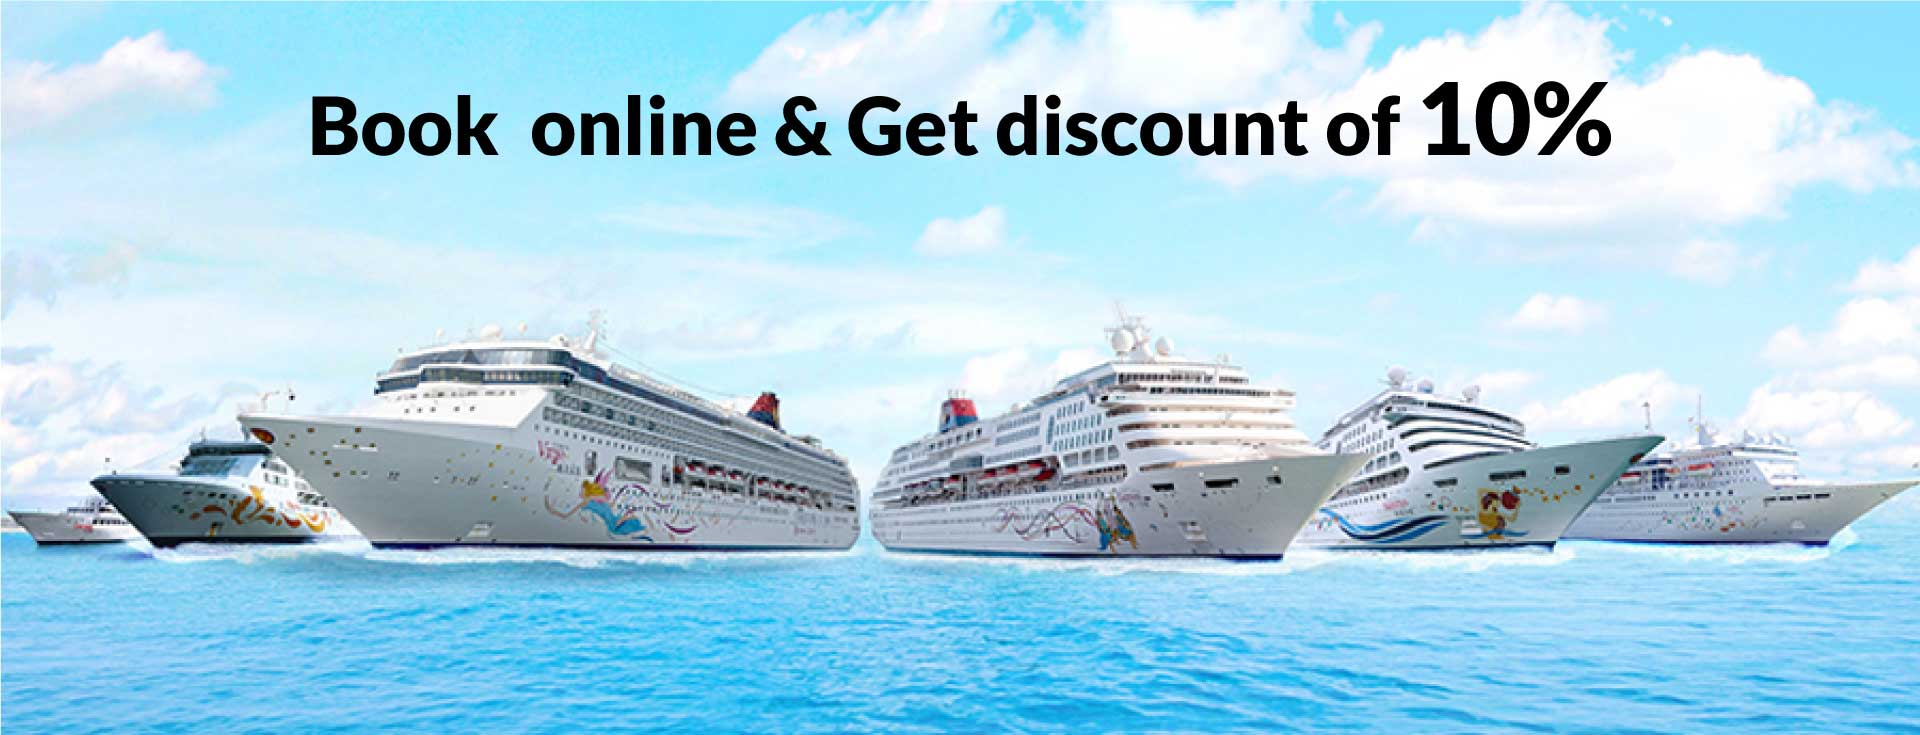 Star Cruises Deals On Cruise Vacation Packages Book